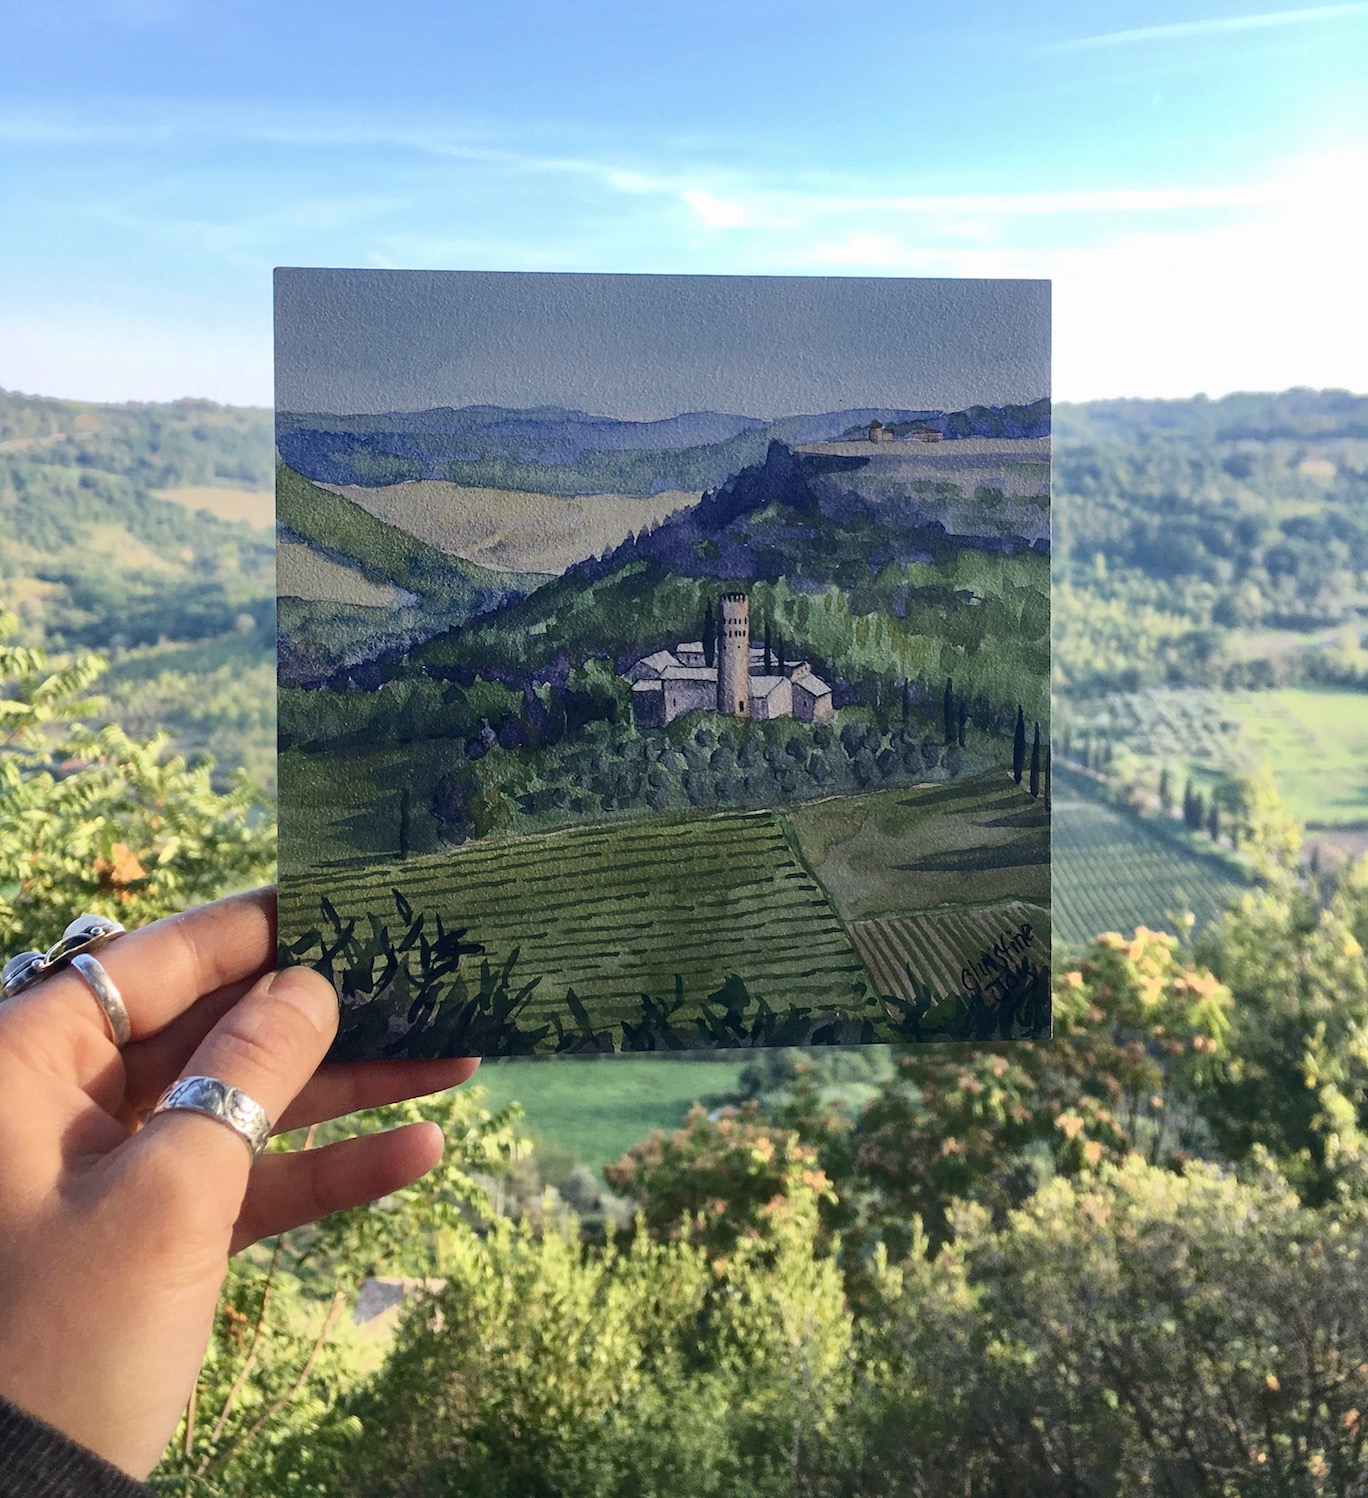 Here is a little painting I made in Orvieto, Italy last year!